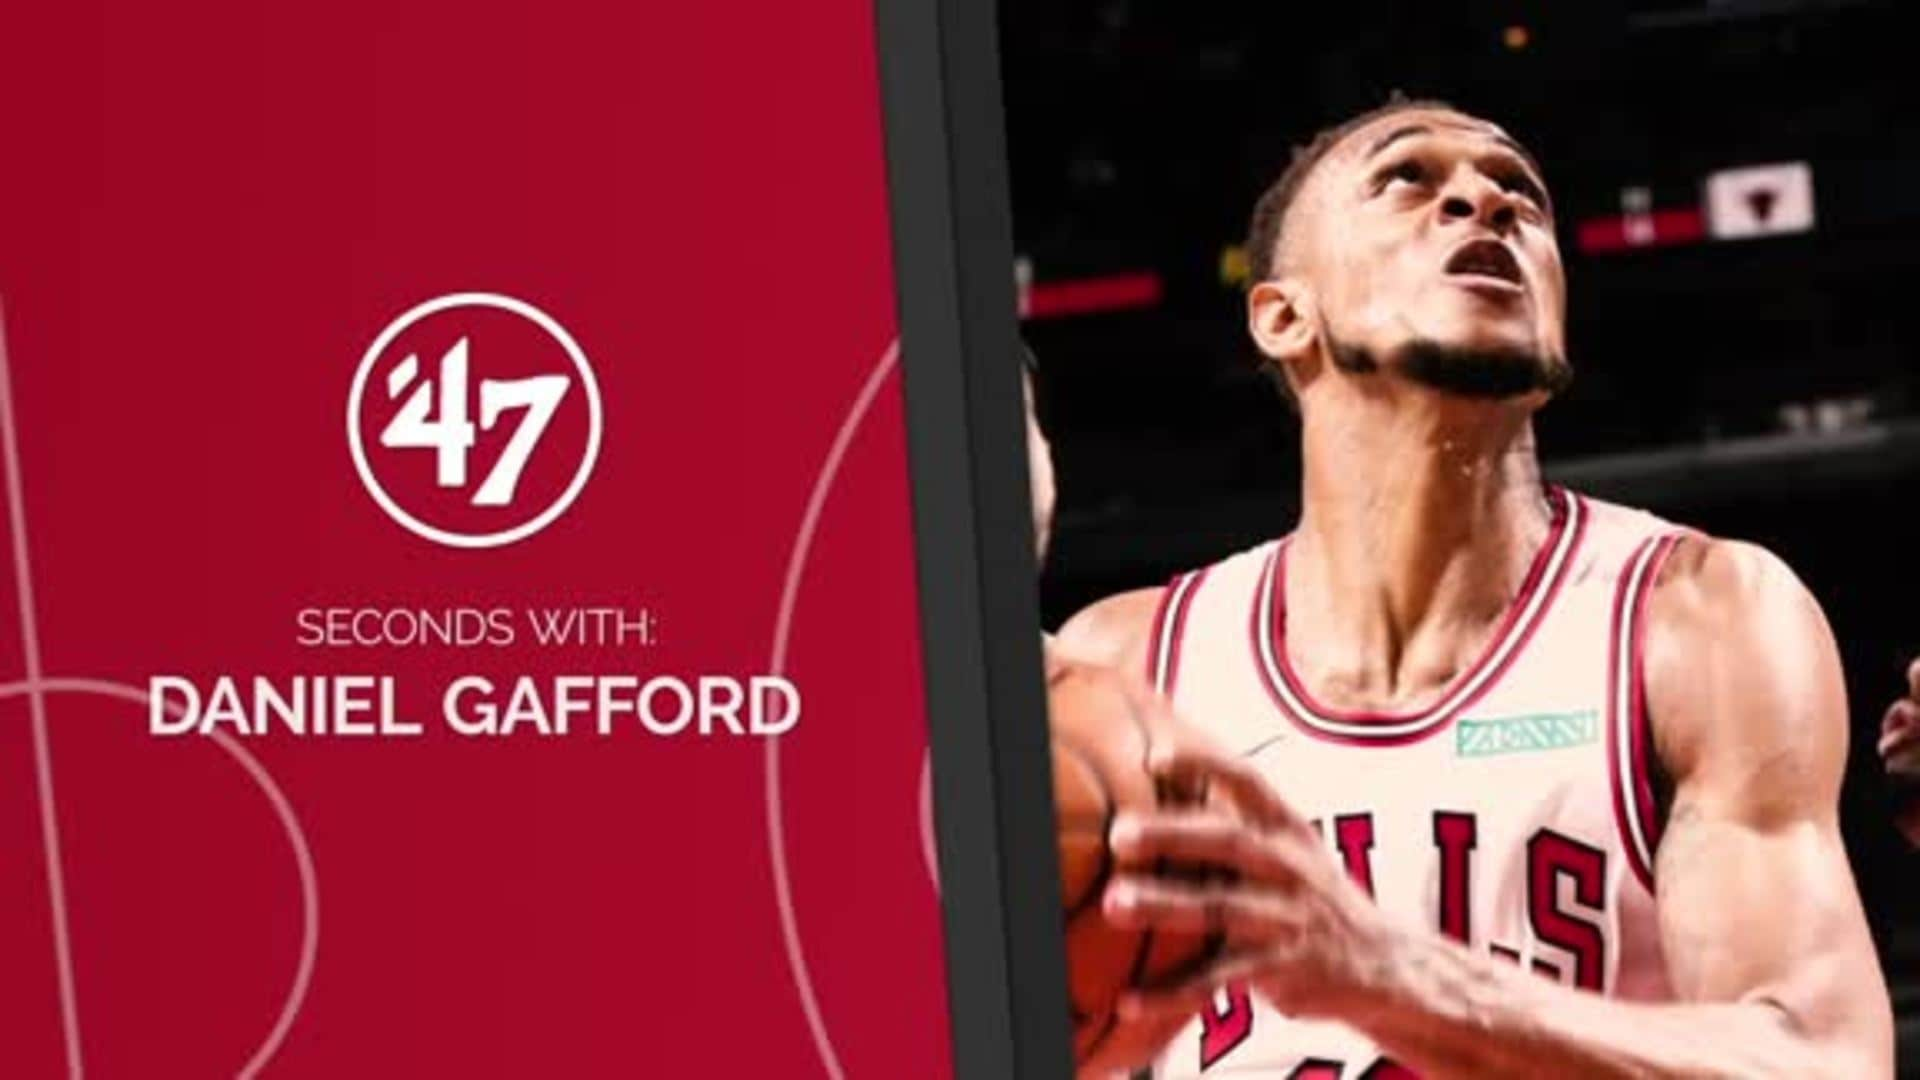 47 Seconds with Daniel Gafford